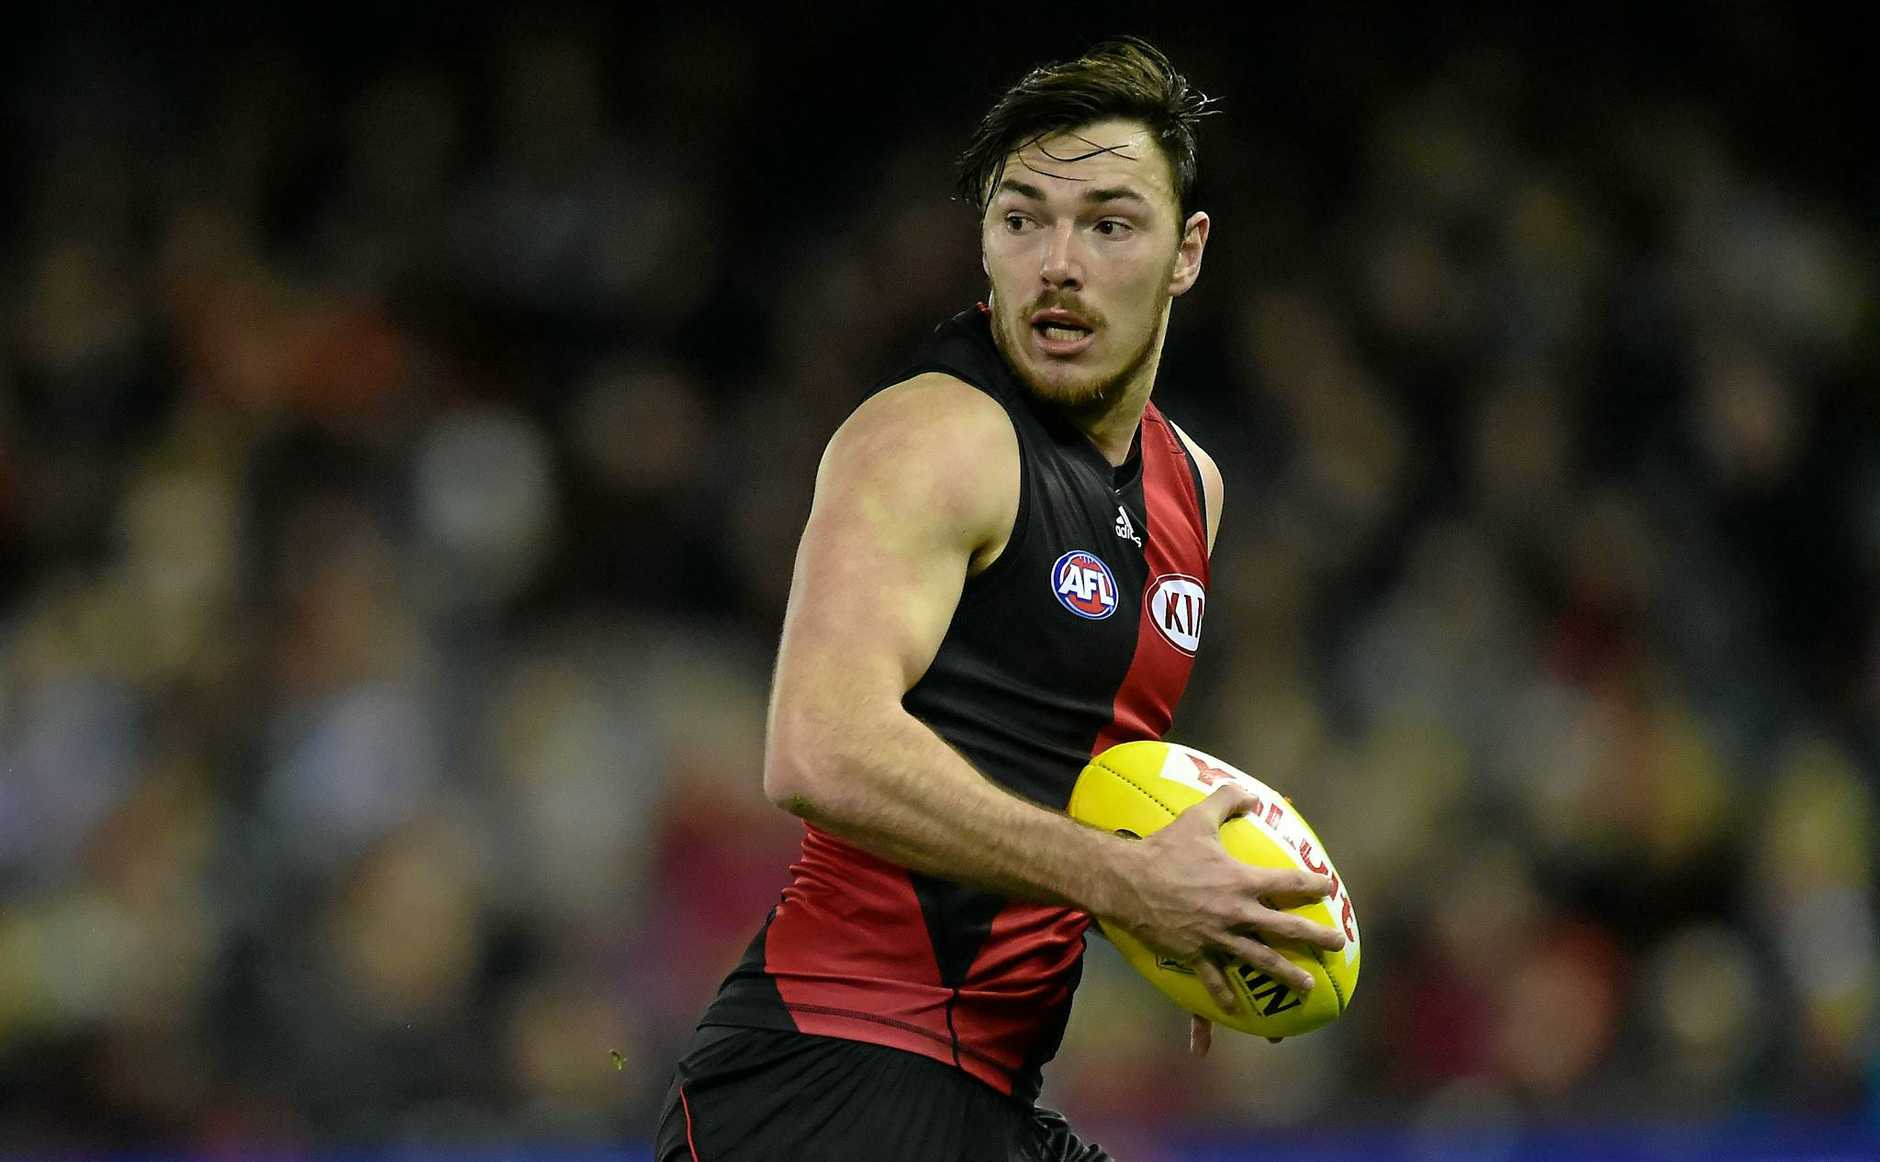 Essendon Bombers player Michael Hibberd possess the ball against the Western Bulldogs during round 18 of the AFL at Etihad Stadium in Melbourne, Sunday, Aug 2, 2015. (AAP Image/Julian Smith) NO ARCHIVING, EDITORIAL USE ONLY\